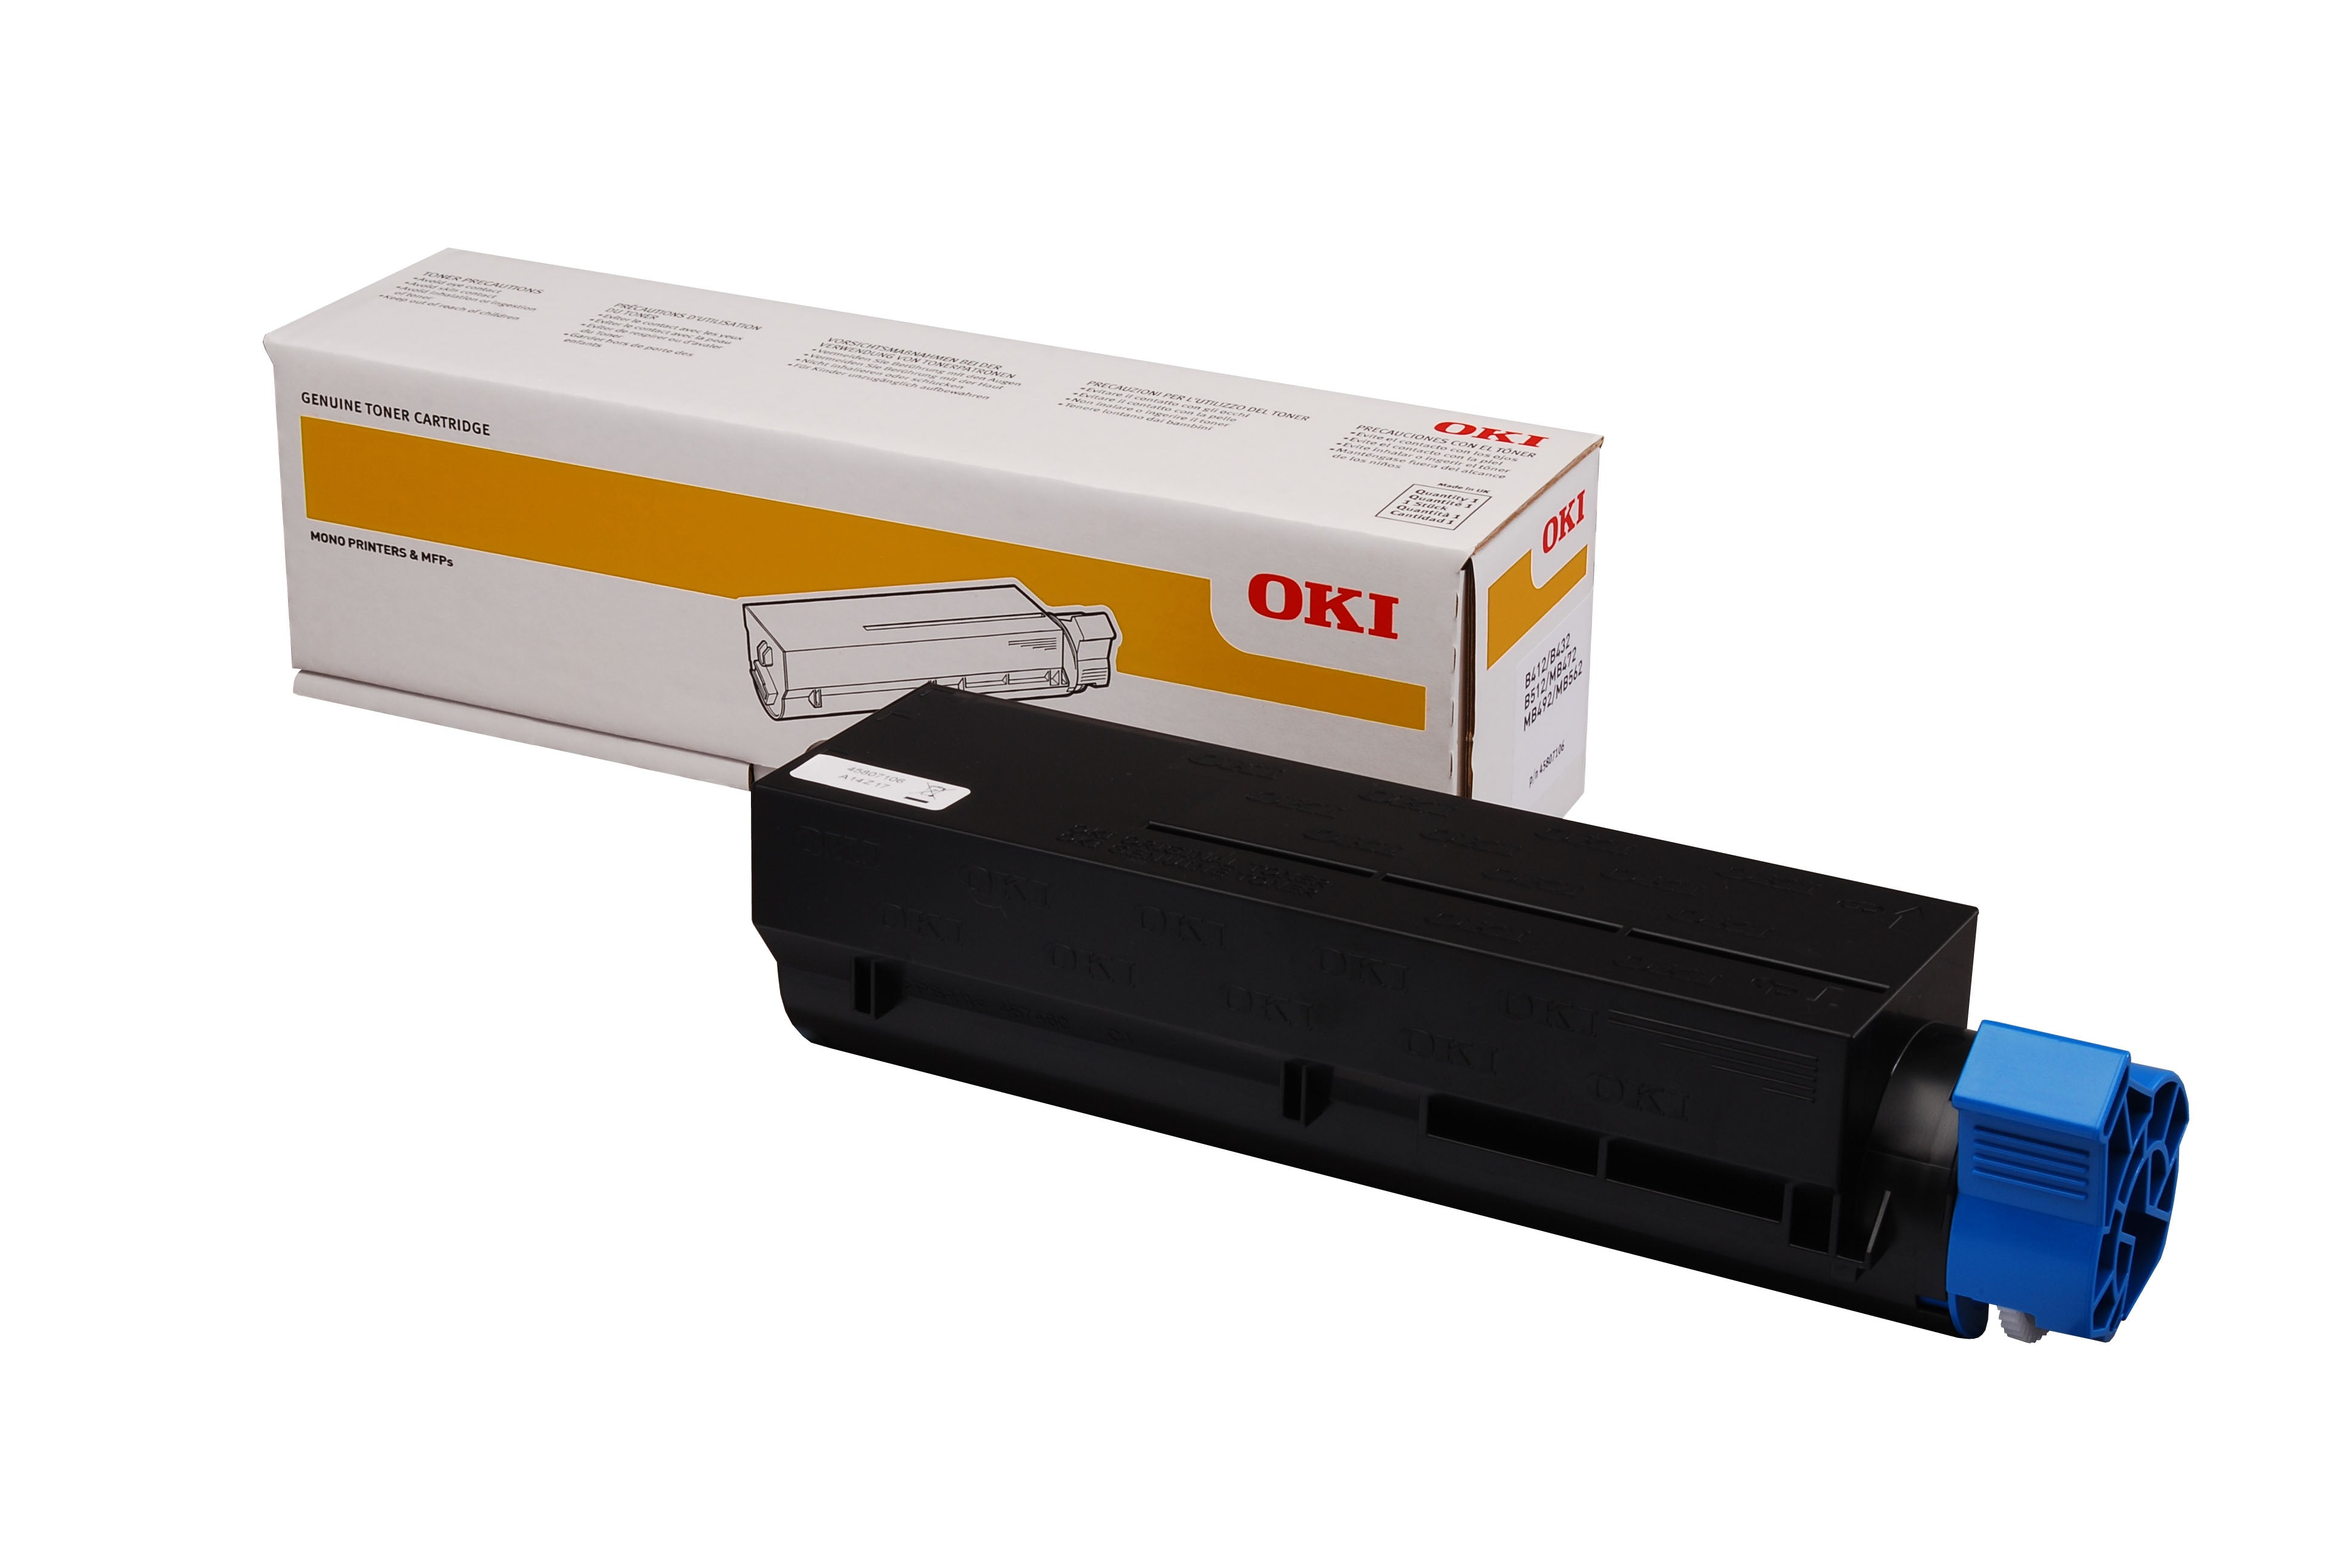 OKI B432dn Black Toner (3,000 Pages) 45807103